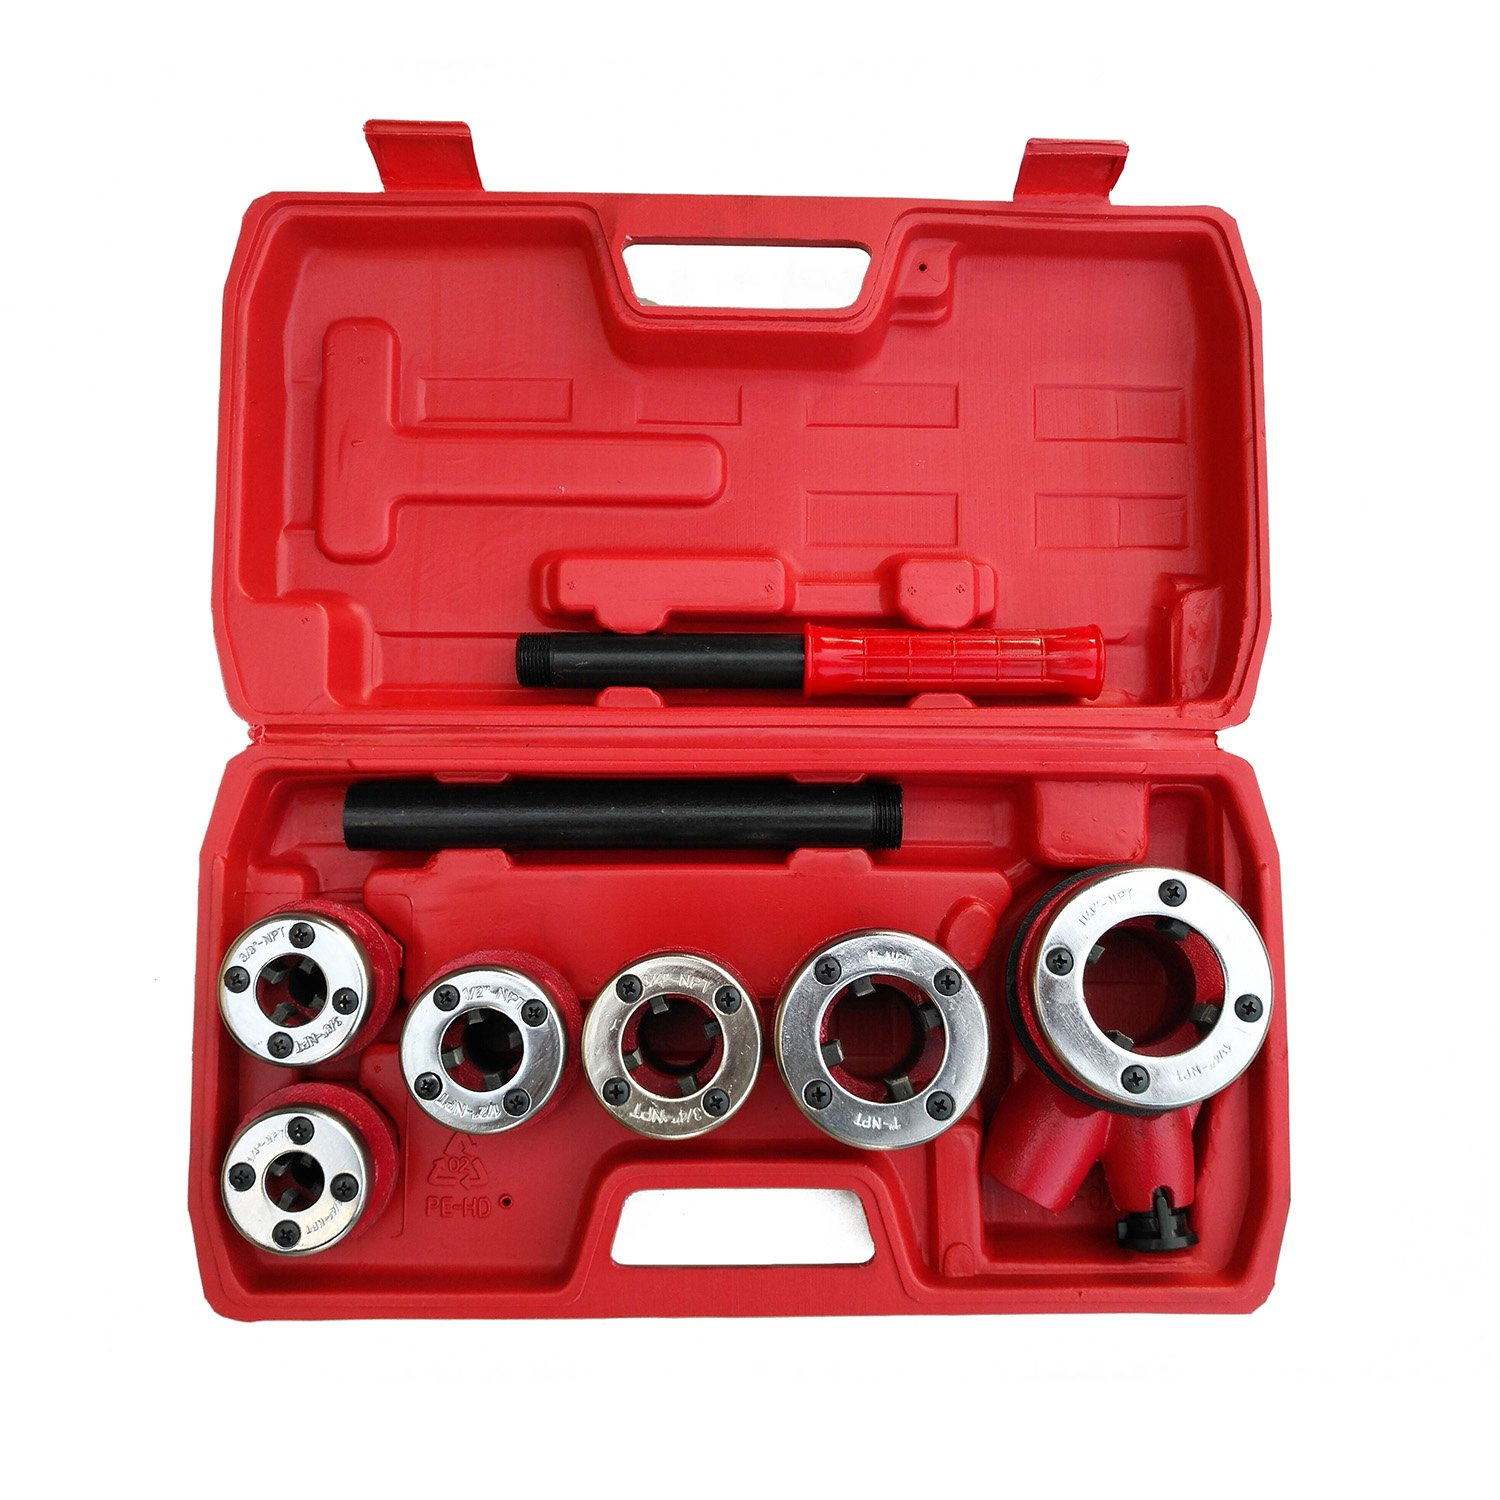 Ratchet Pipe Threader- 6 Piece Die Pipe Threading Set, NPT ½'' to 1¼'' Cutting Tool For All Kinds Of Pipes, a U.S. Solid Product by U.S. Solid